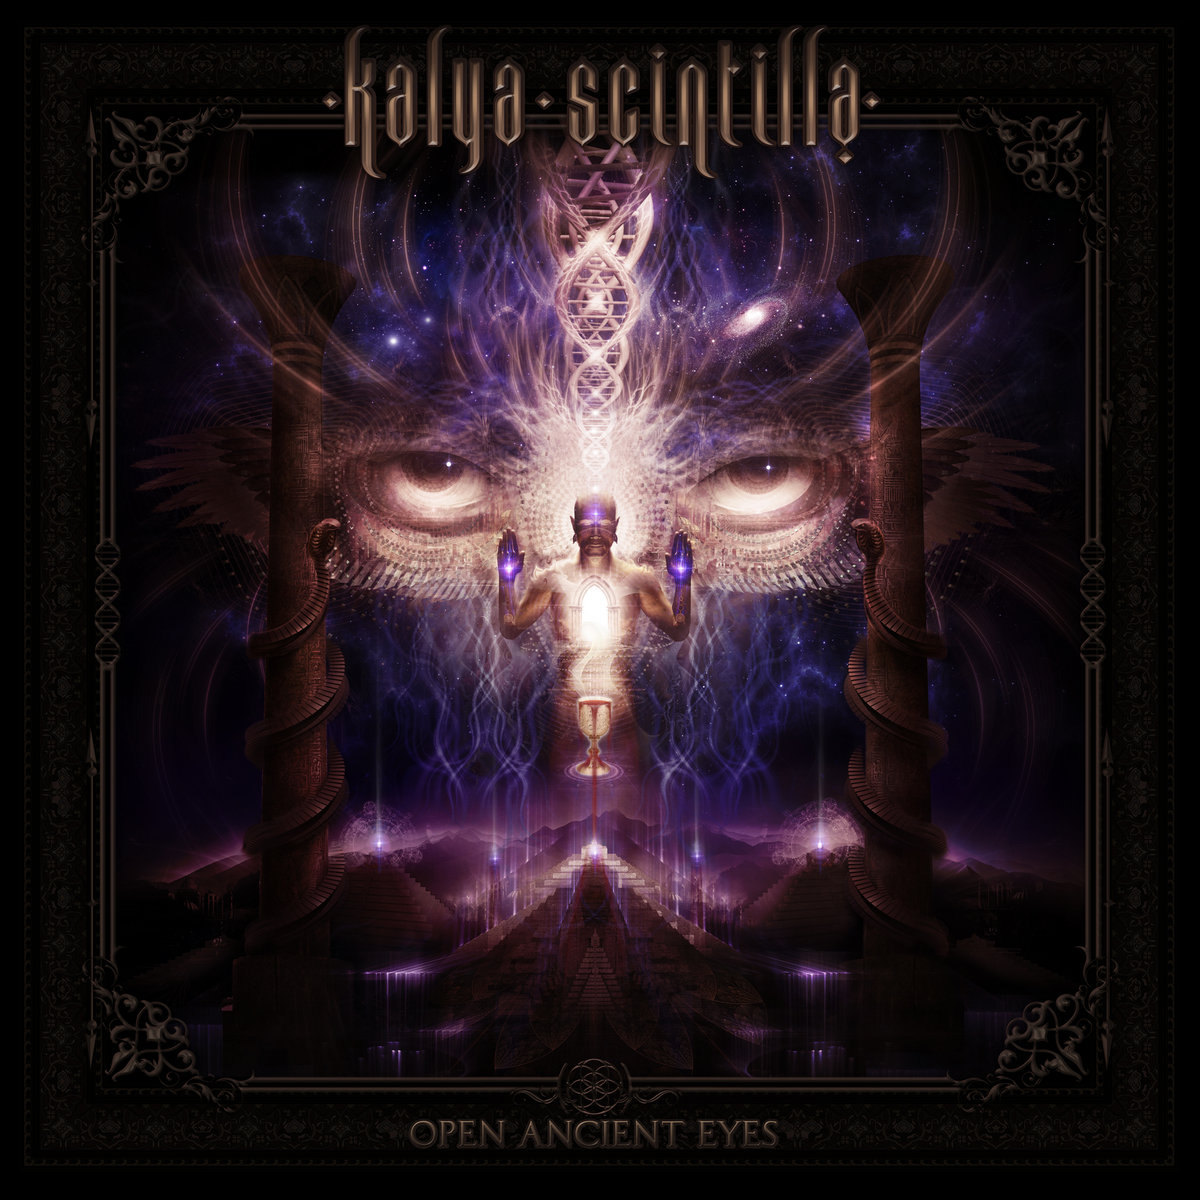 Kalya Scintilla - Open Ancient Eyes - Album Mix Journey @ 'Open Ancient Eyes' album (432hz, electronic)